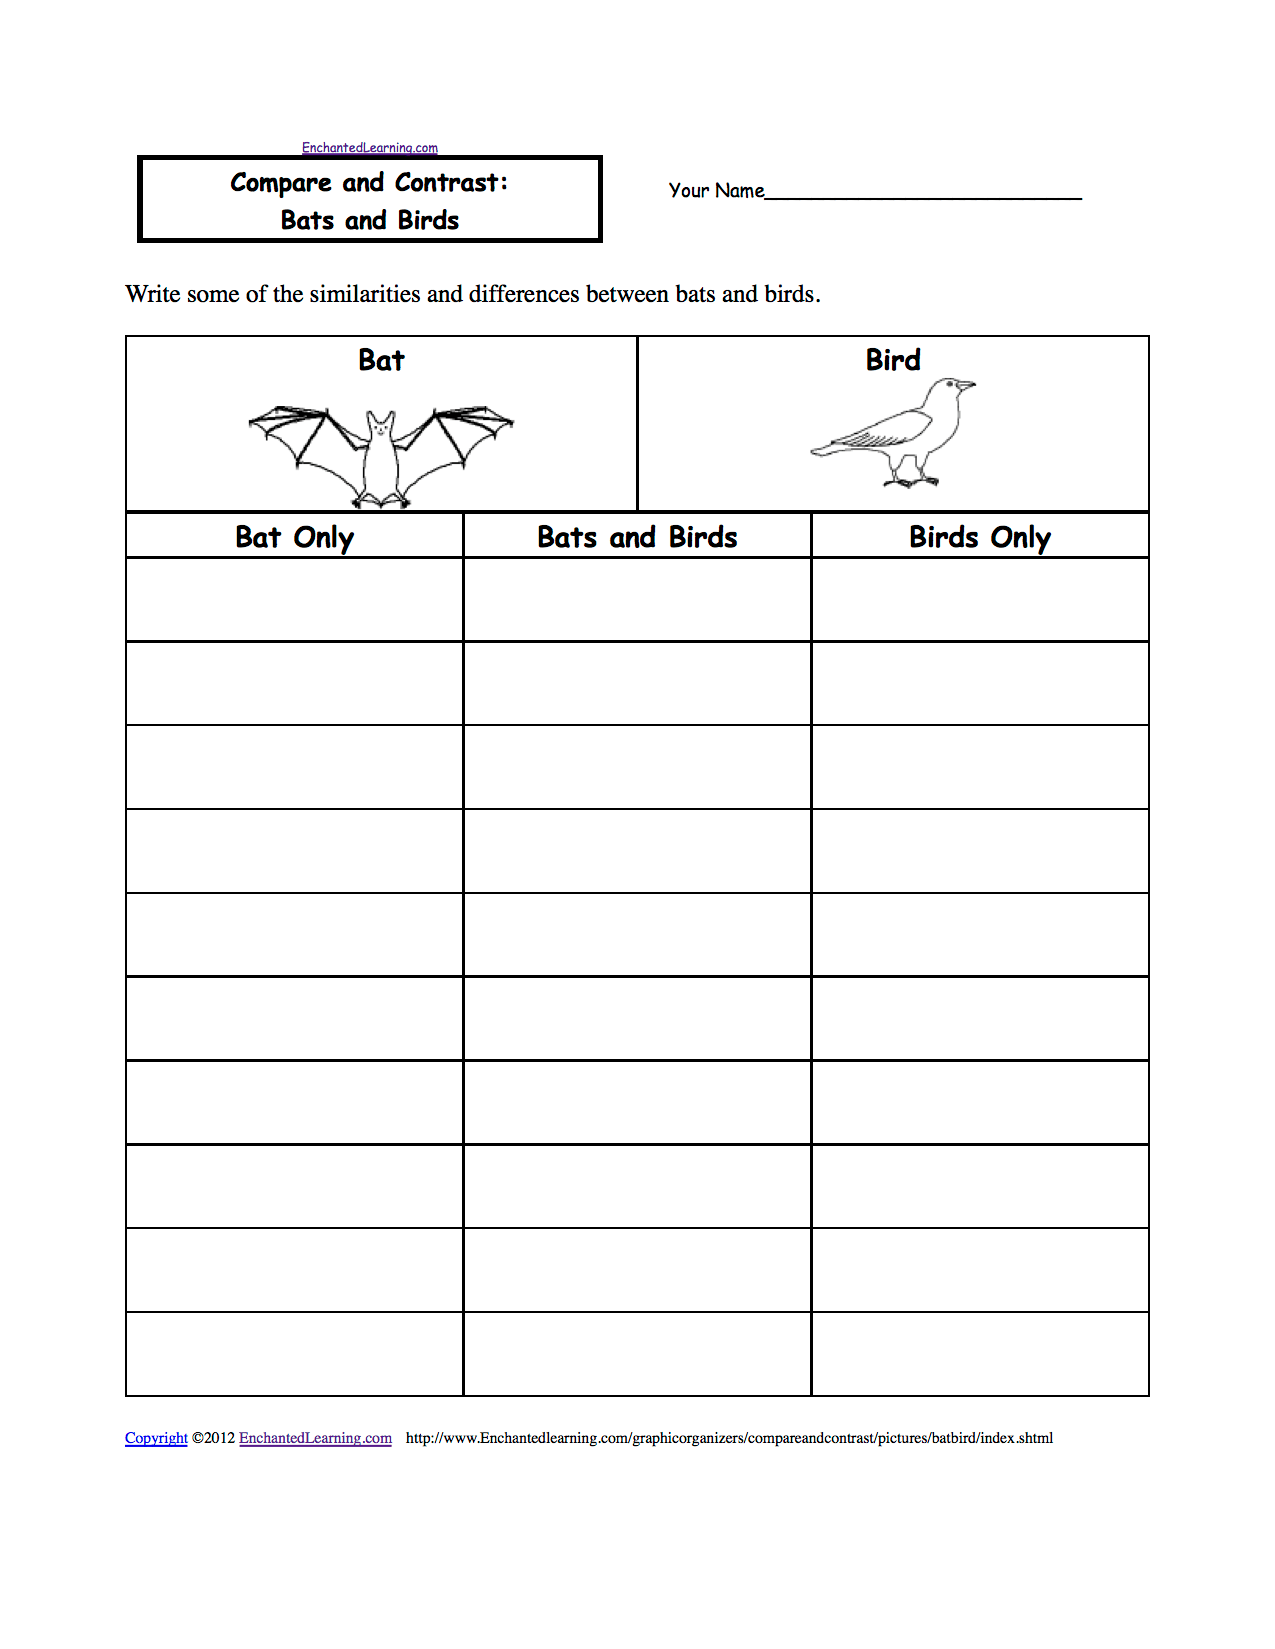 Compare And Contrast Worksheets 5th Grade Biomescompare